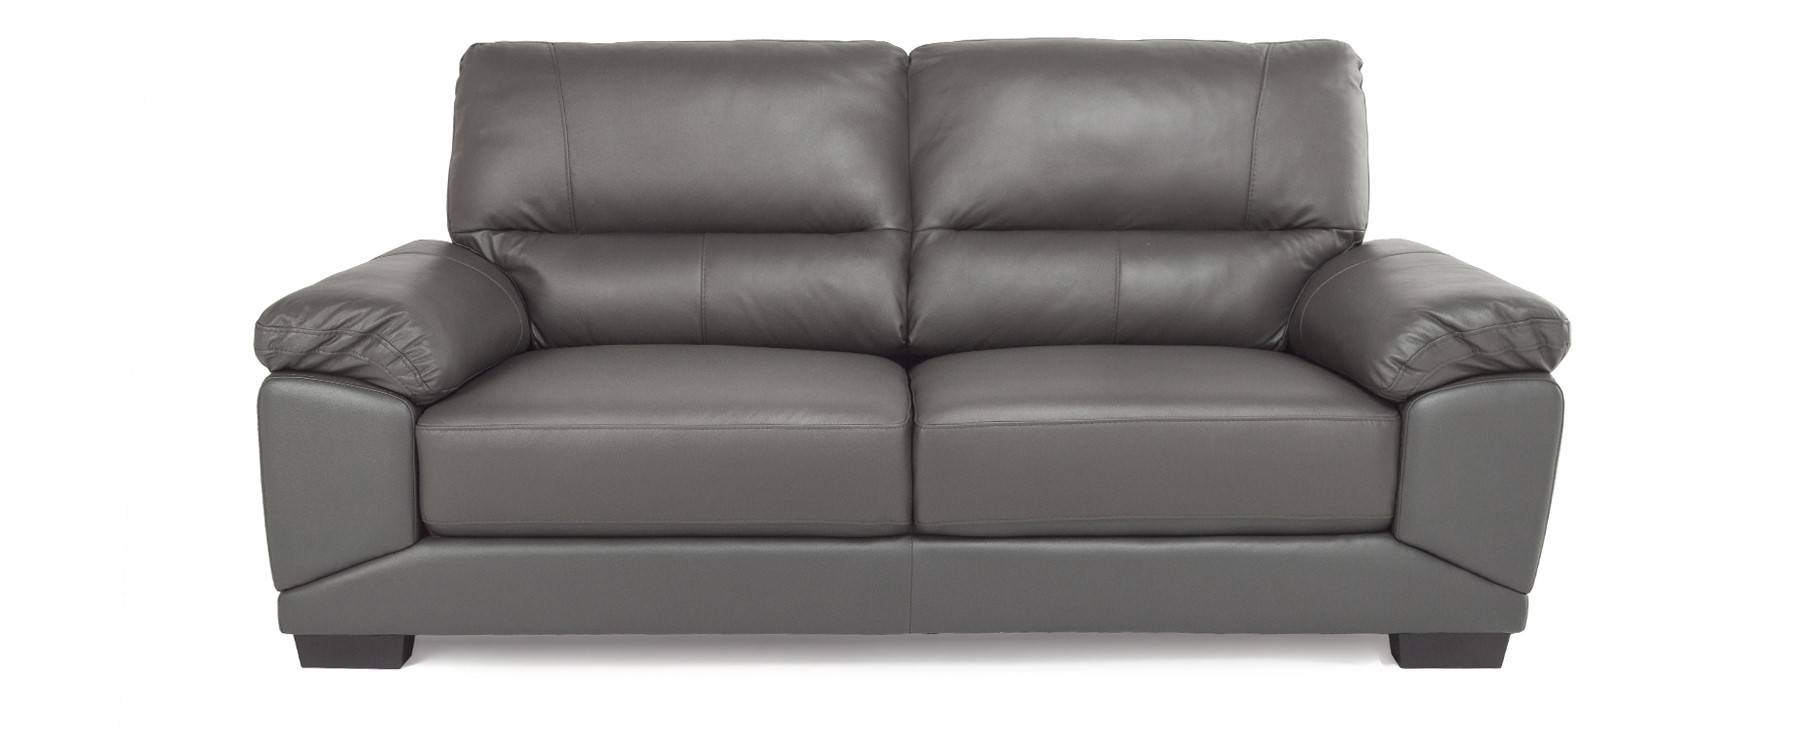 Furniture Home : Sofa Chairs Furniture Designs (13) Modern Elegant Within Sofa Chairs (View 13 of 30)